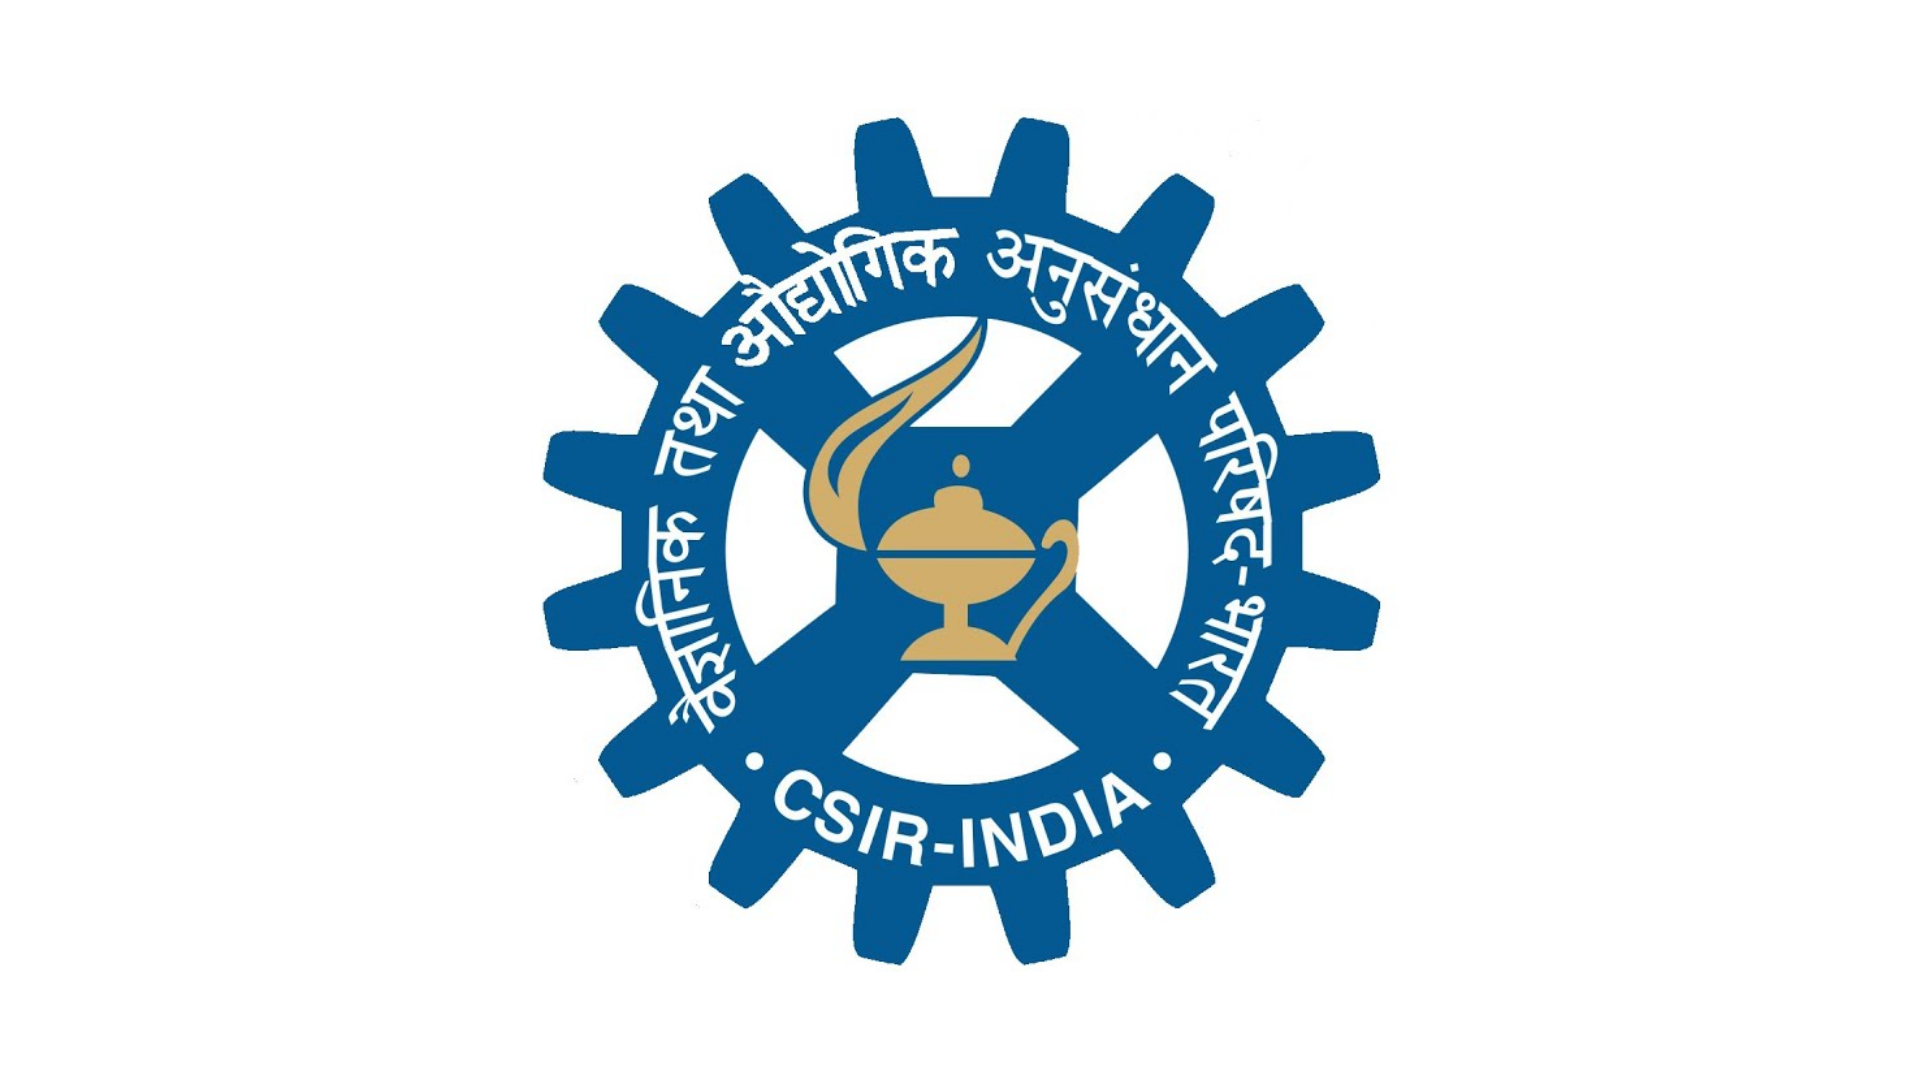 CSIR and Mylan will fight together against Covid-19